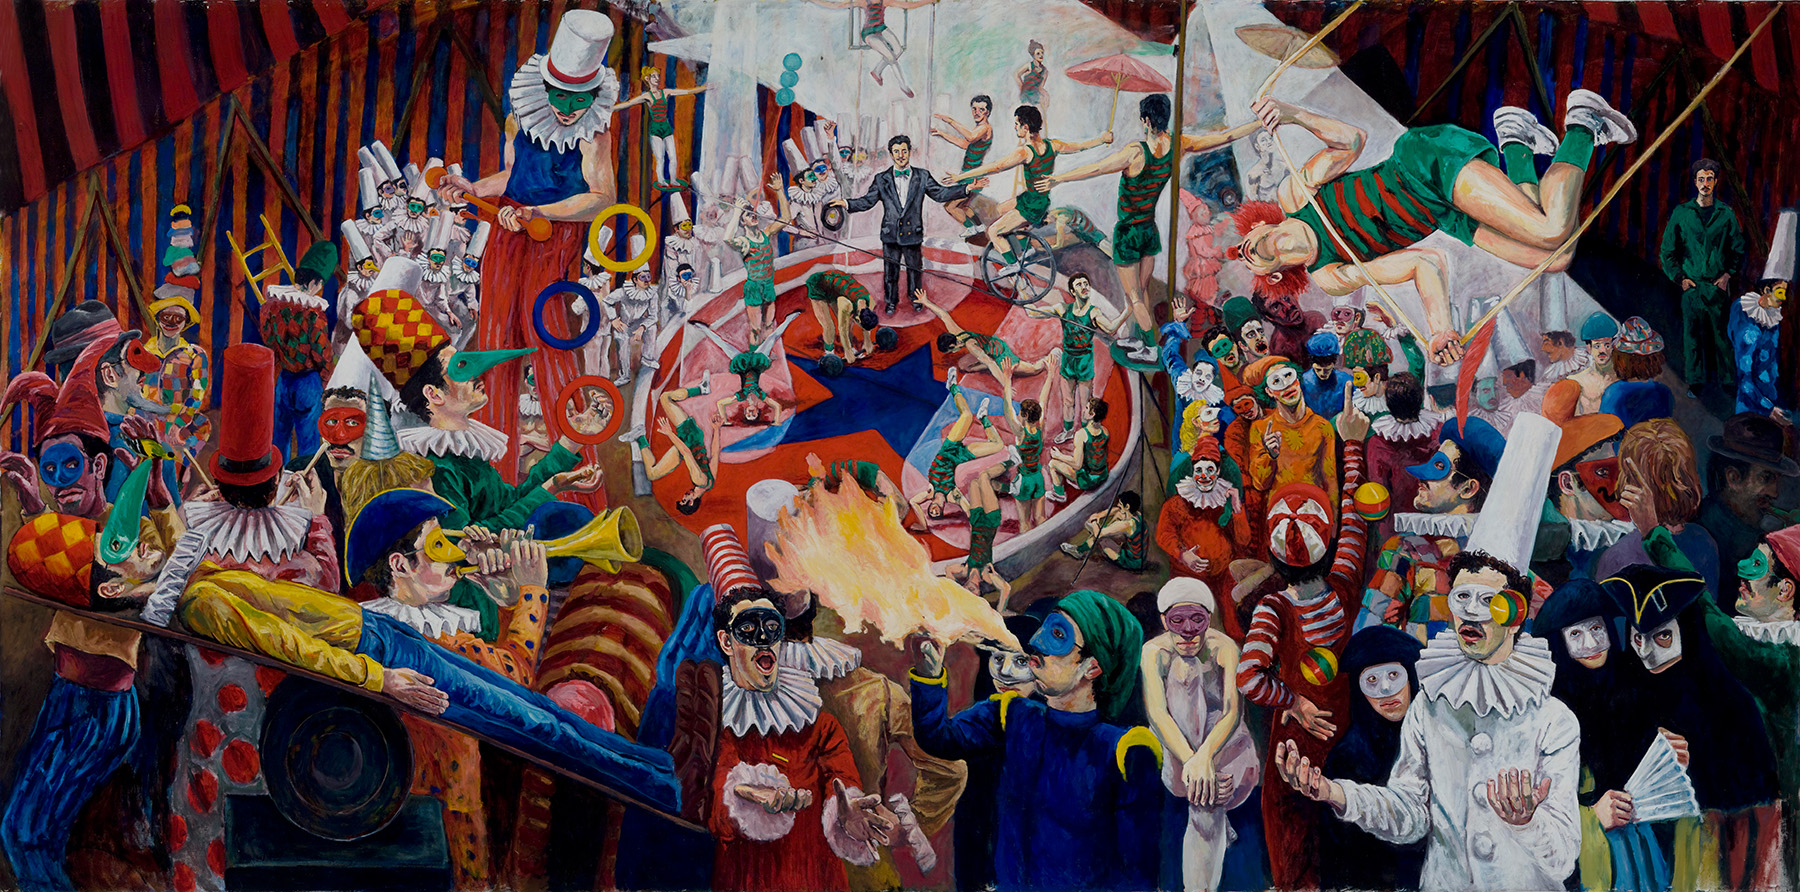 CARLO PITTORE.  La Buffonera.  8' x 17'. Oil on canvas. 1983. © International Artists Manifest  PHOTO CREDIT: Jay York